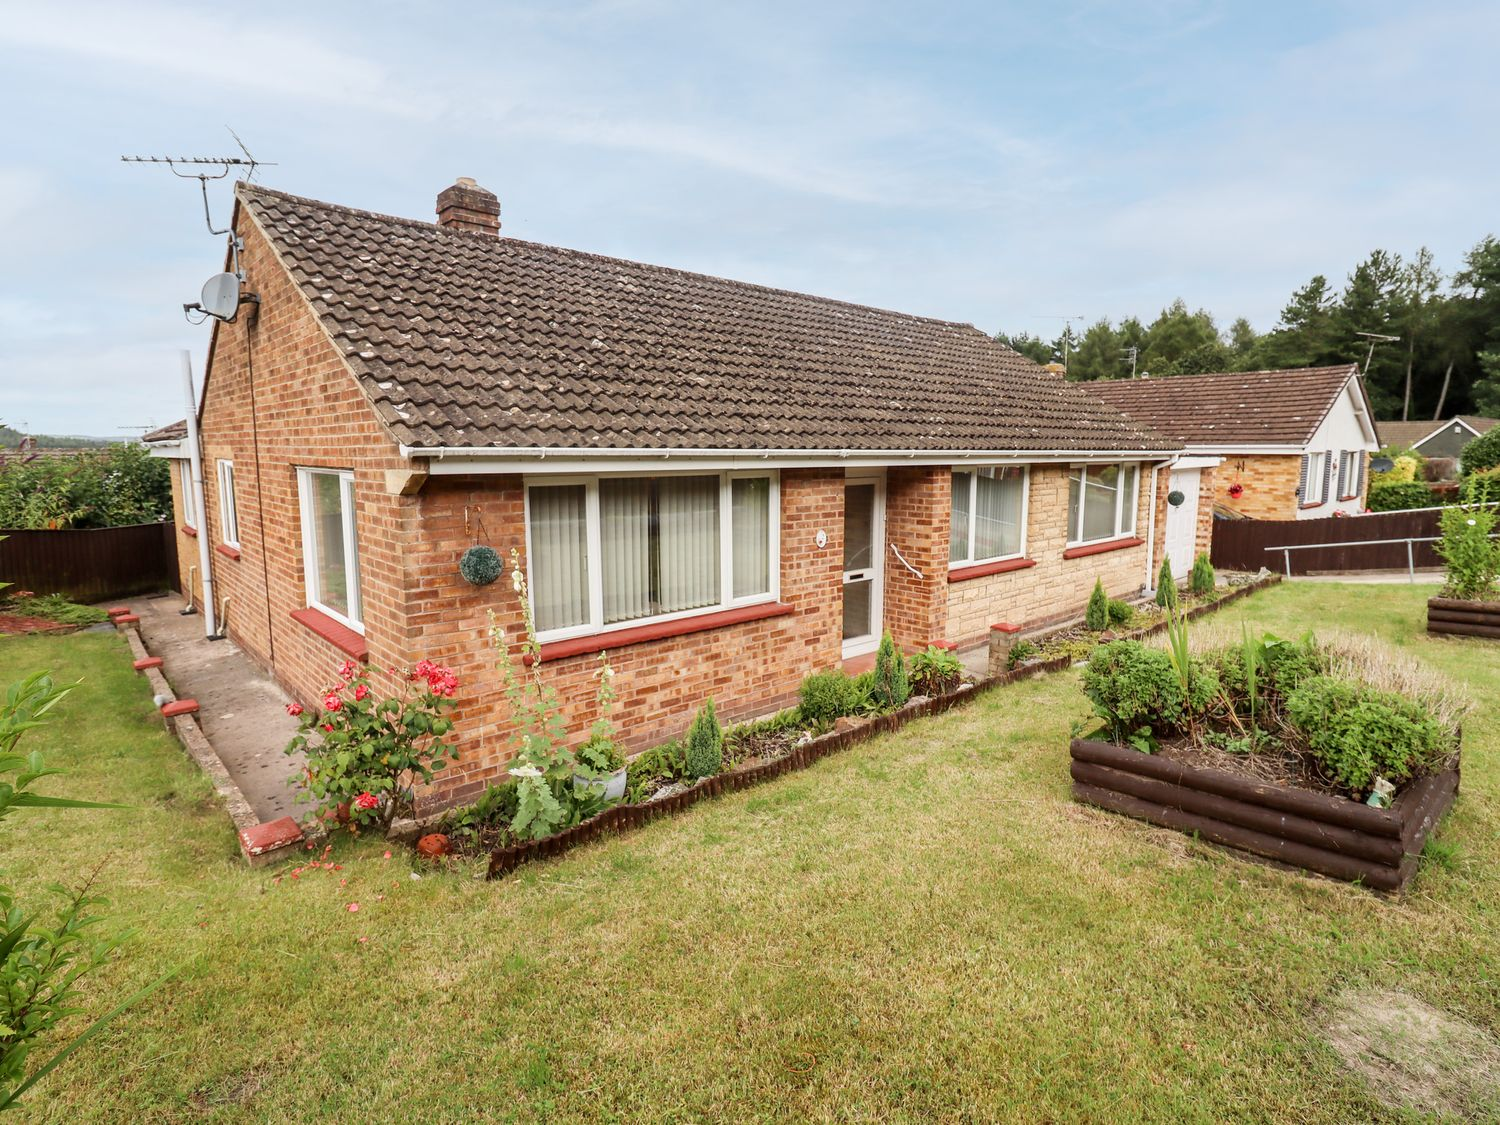 2 Springfield Drive - Cotswolds - 1082248 - photo 1